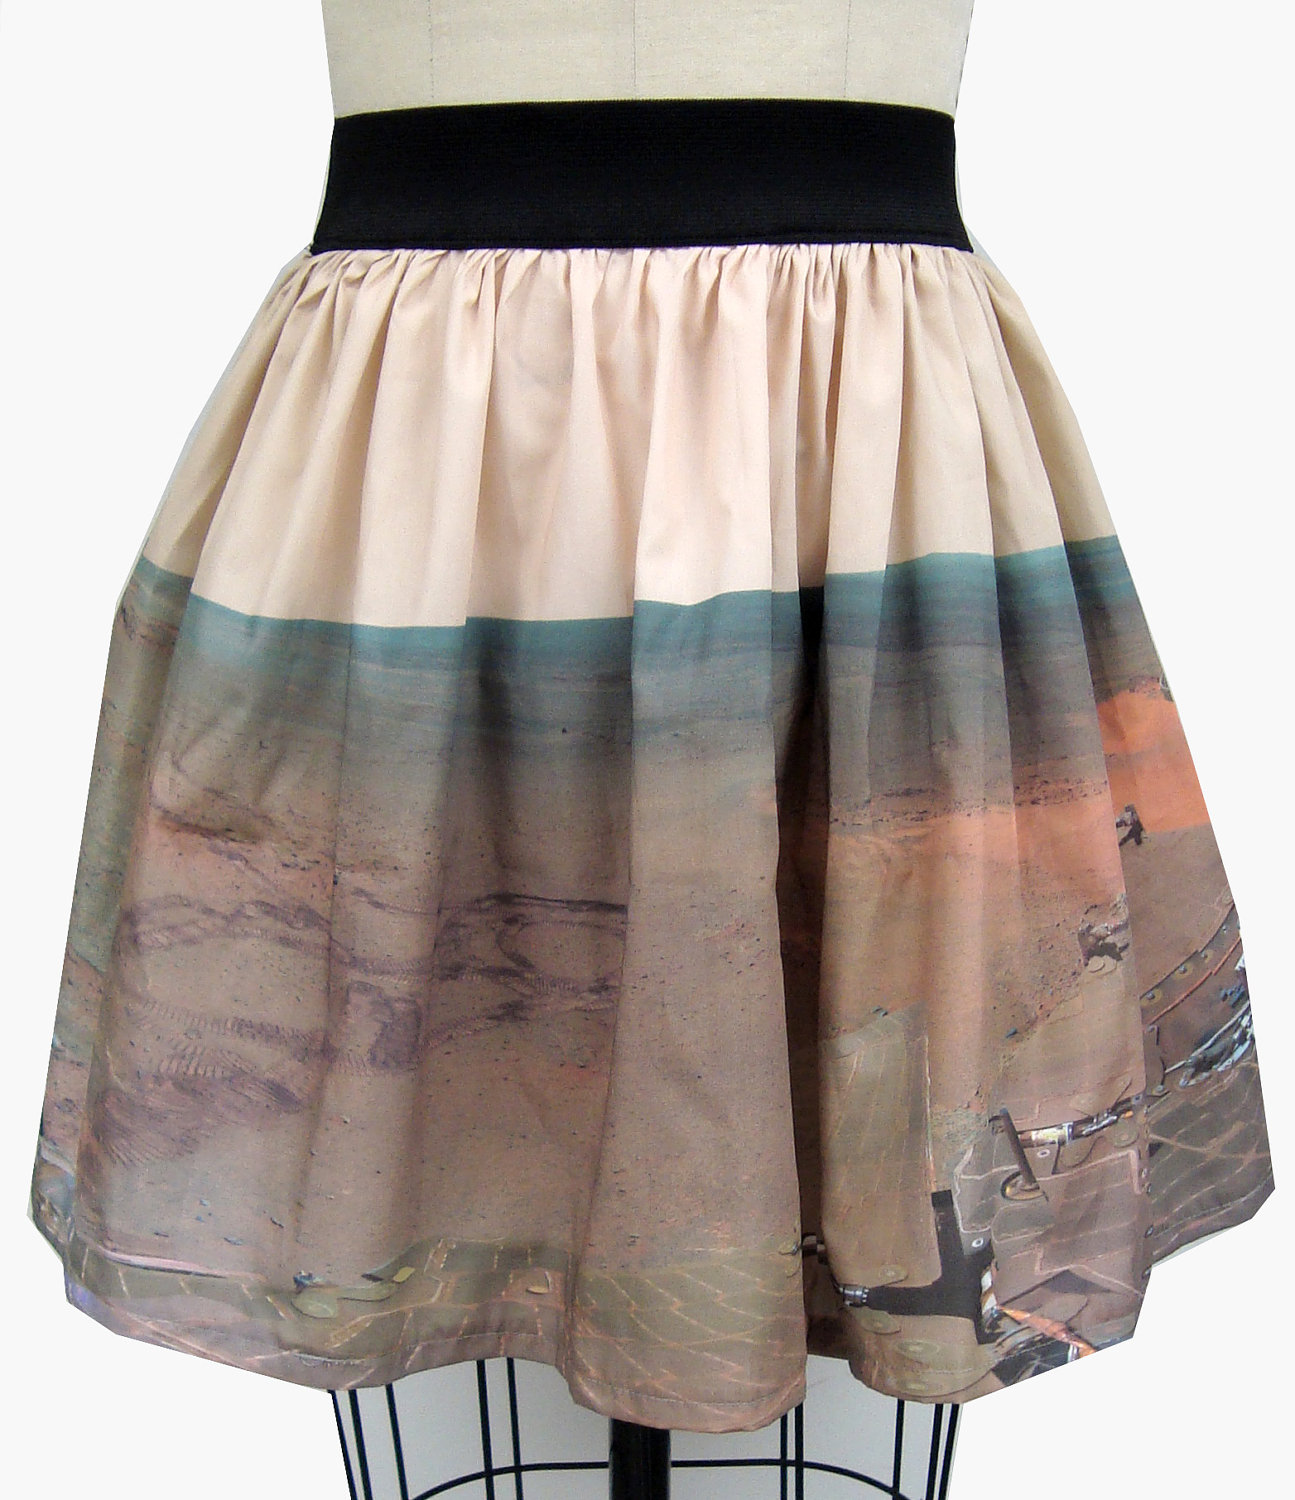 Mars rover panoramic skirt